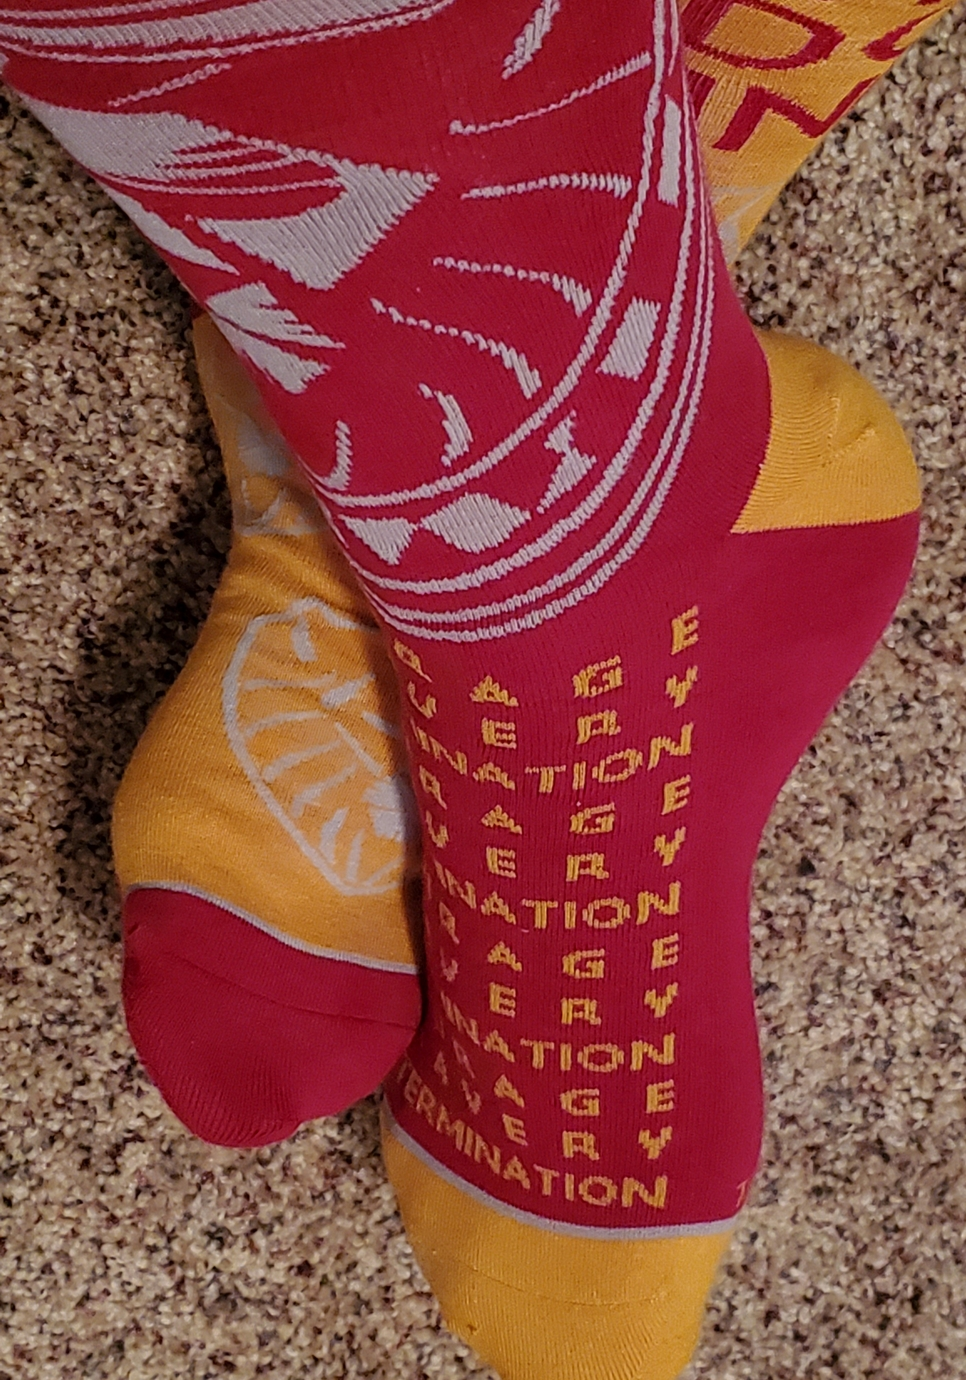 Harry Potter Gryffindor Crew Socks, modeled red sock with attributes and lion, from Hallmark Gold Crown